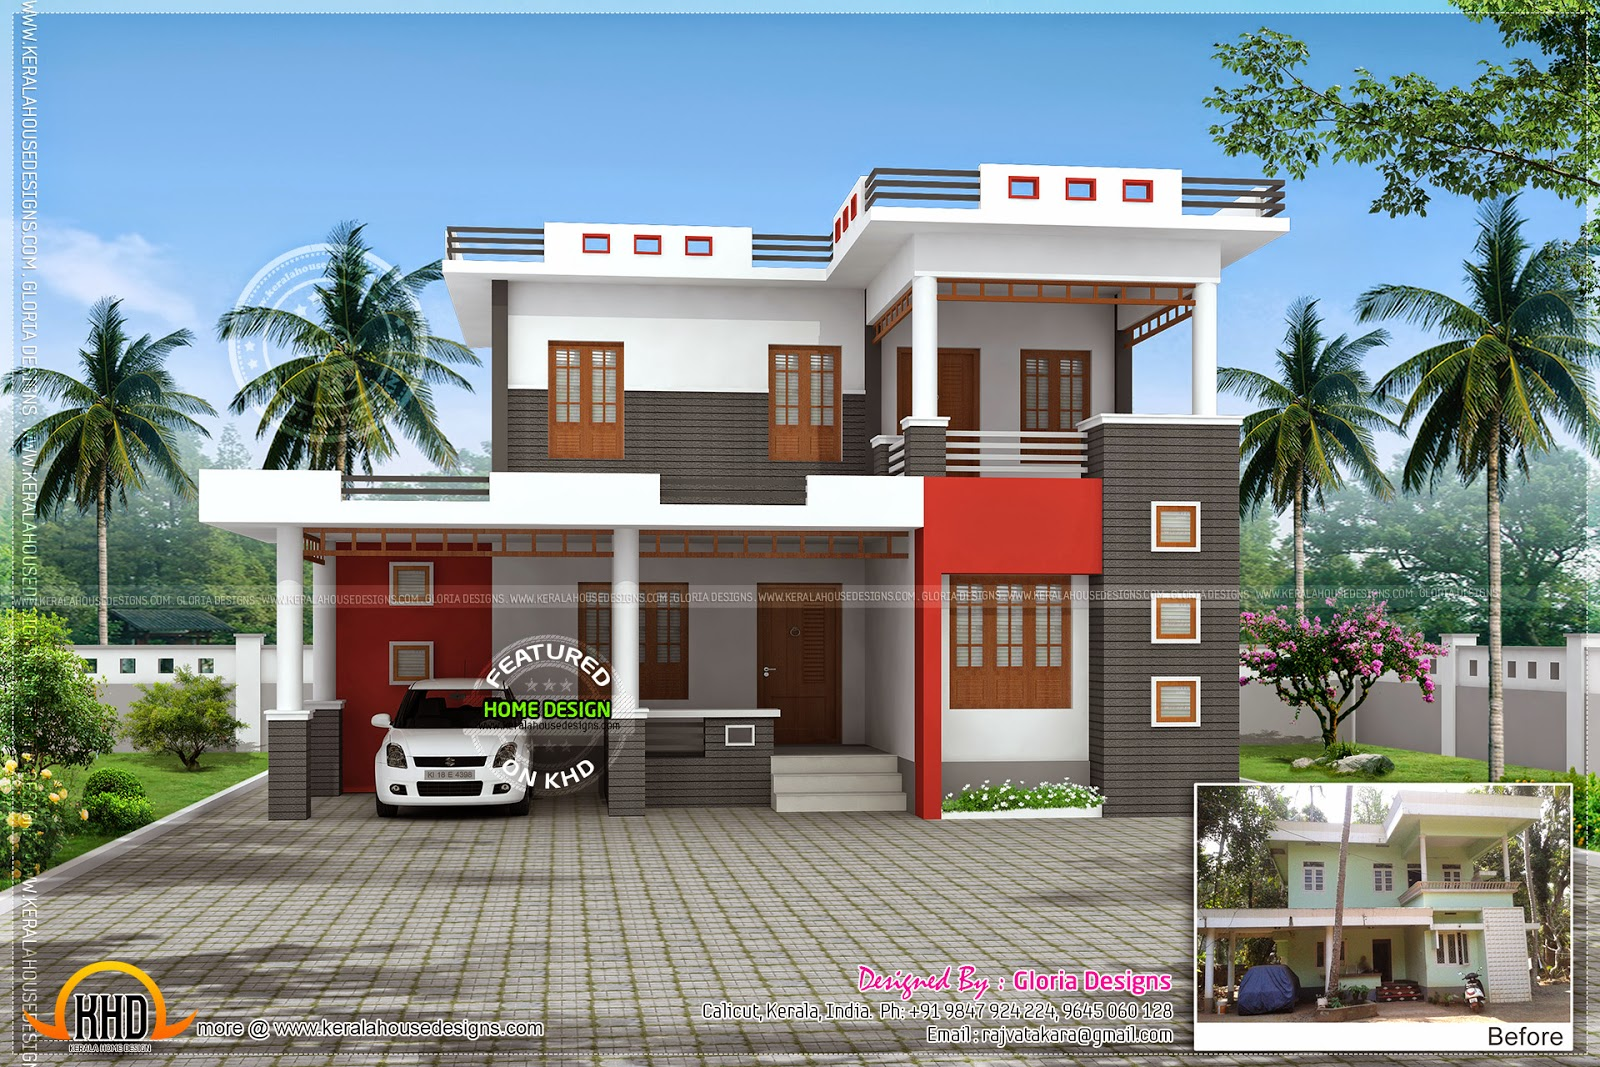 Renovation 3d model for an old house kerala home design New home models and plans